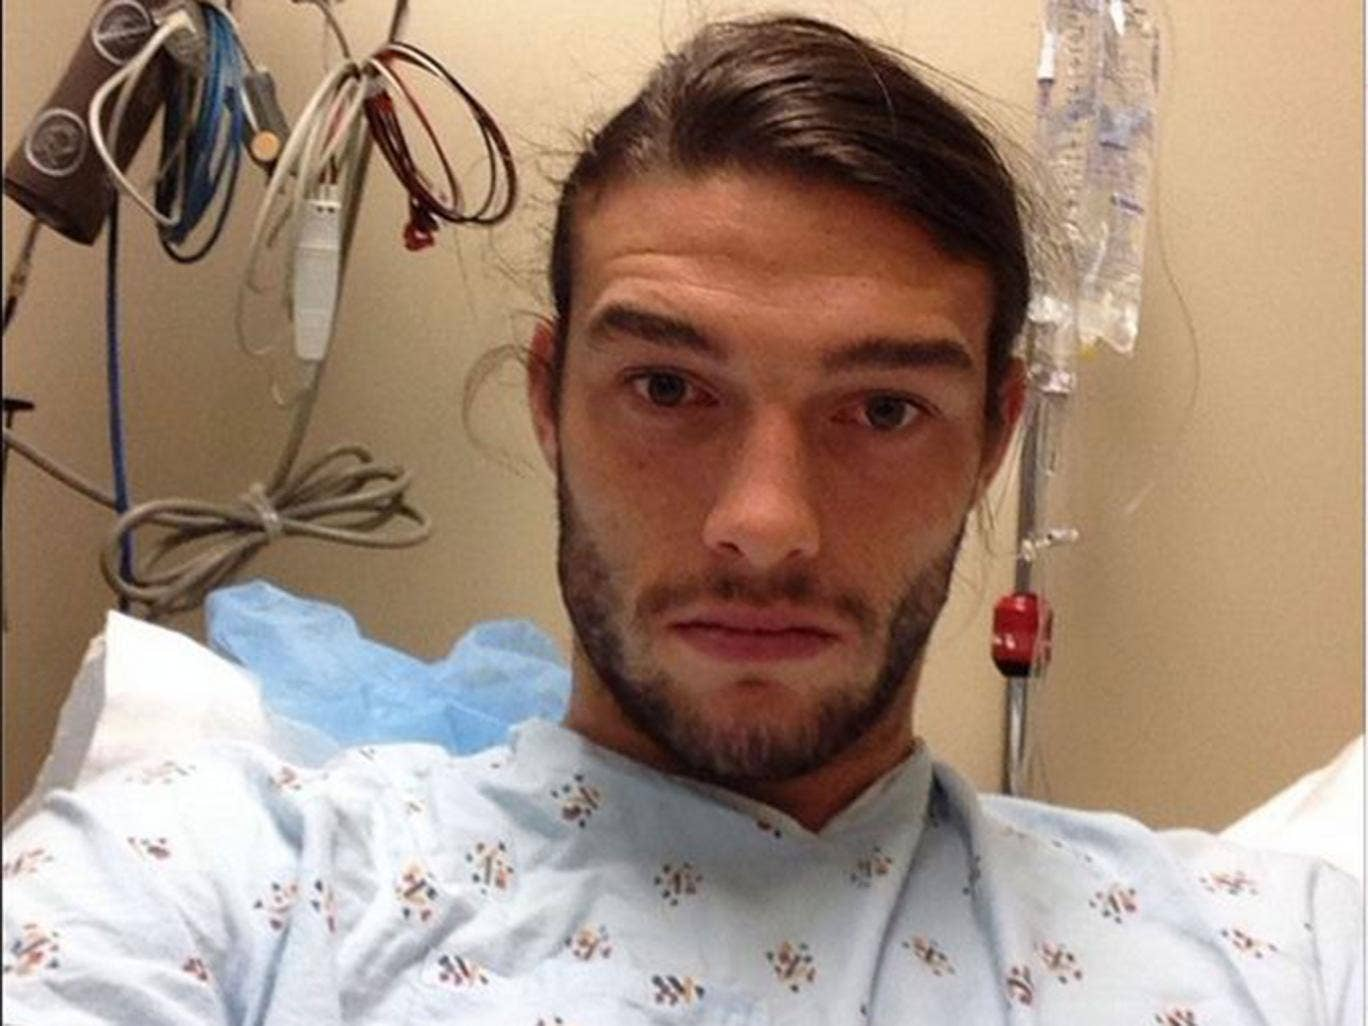 Andy Carroll posted this picture ahead of having ankle surgery that threatens to rule him out for up to four months